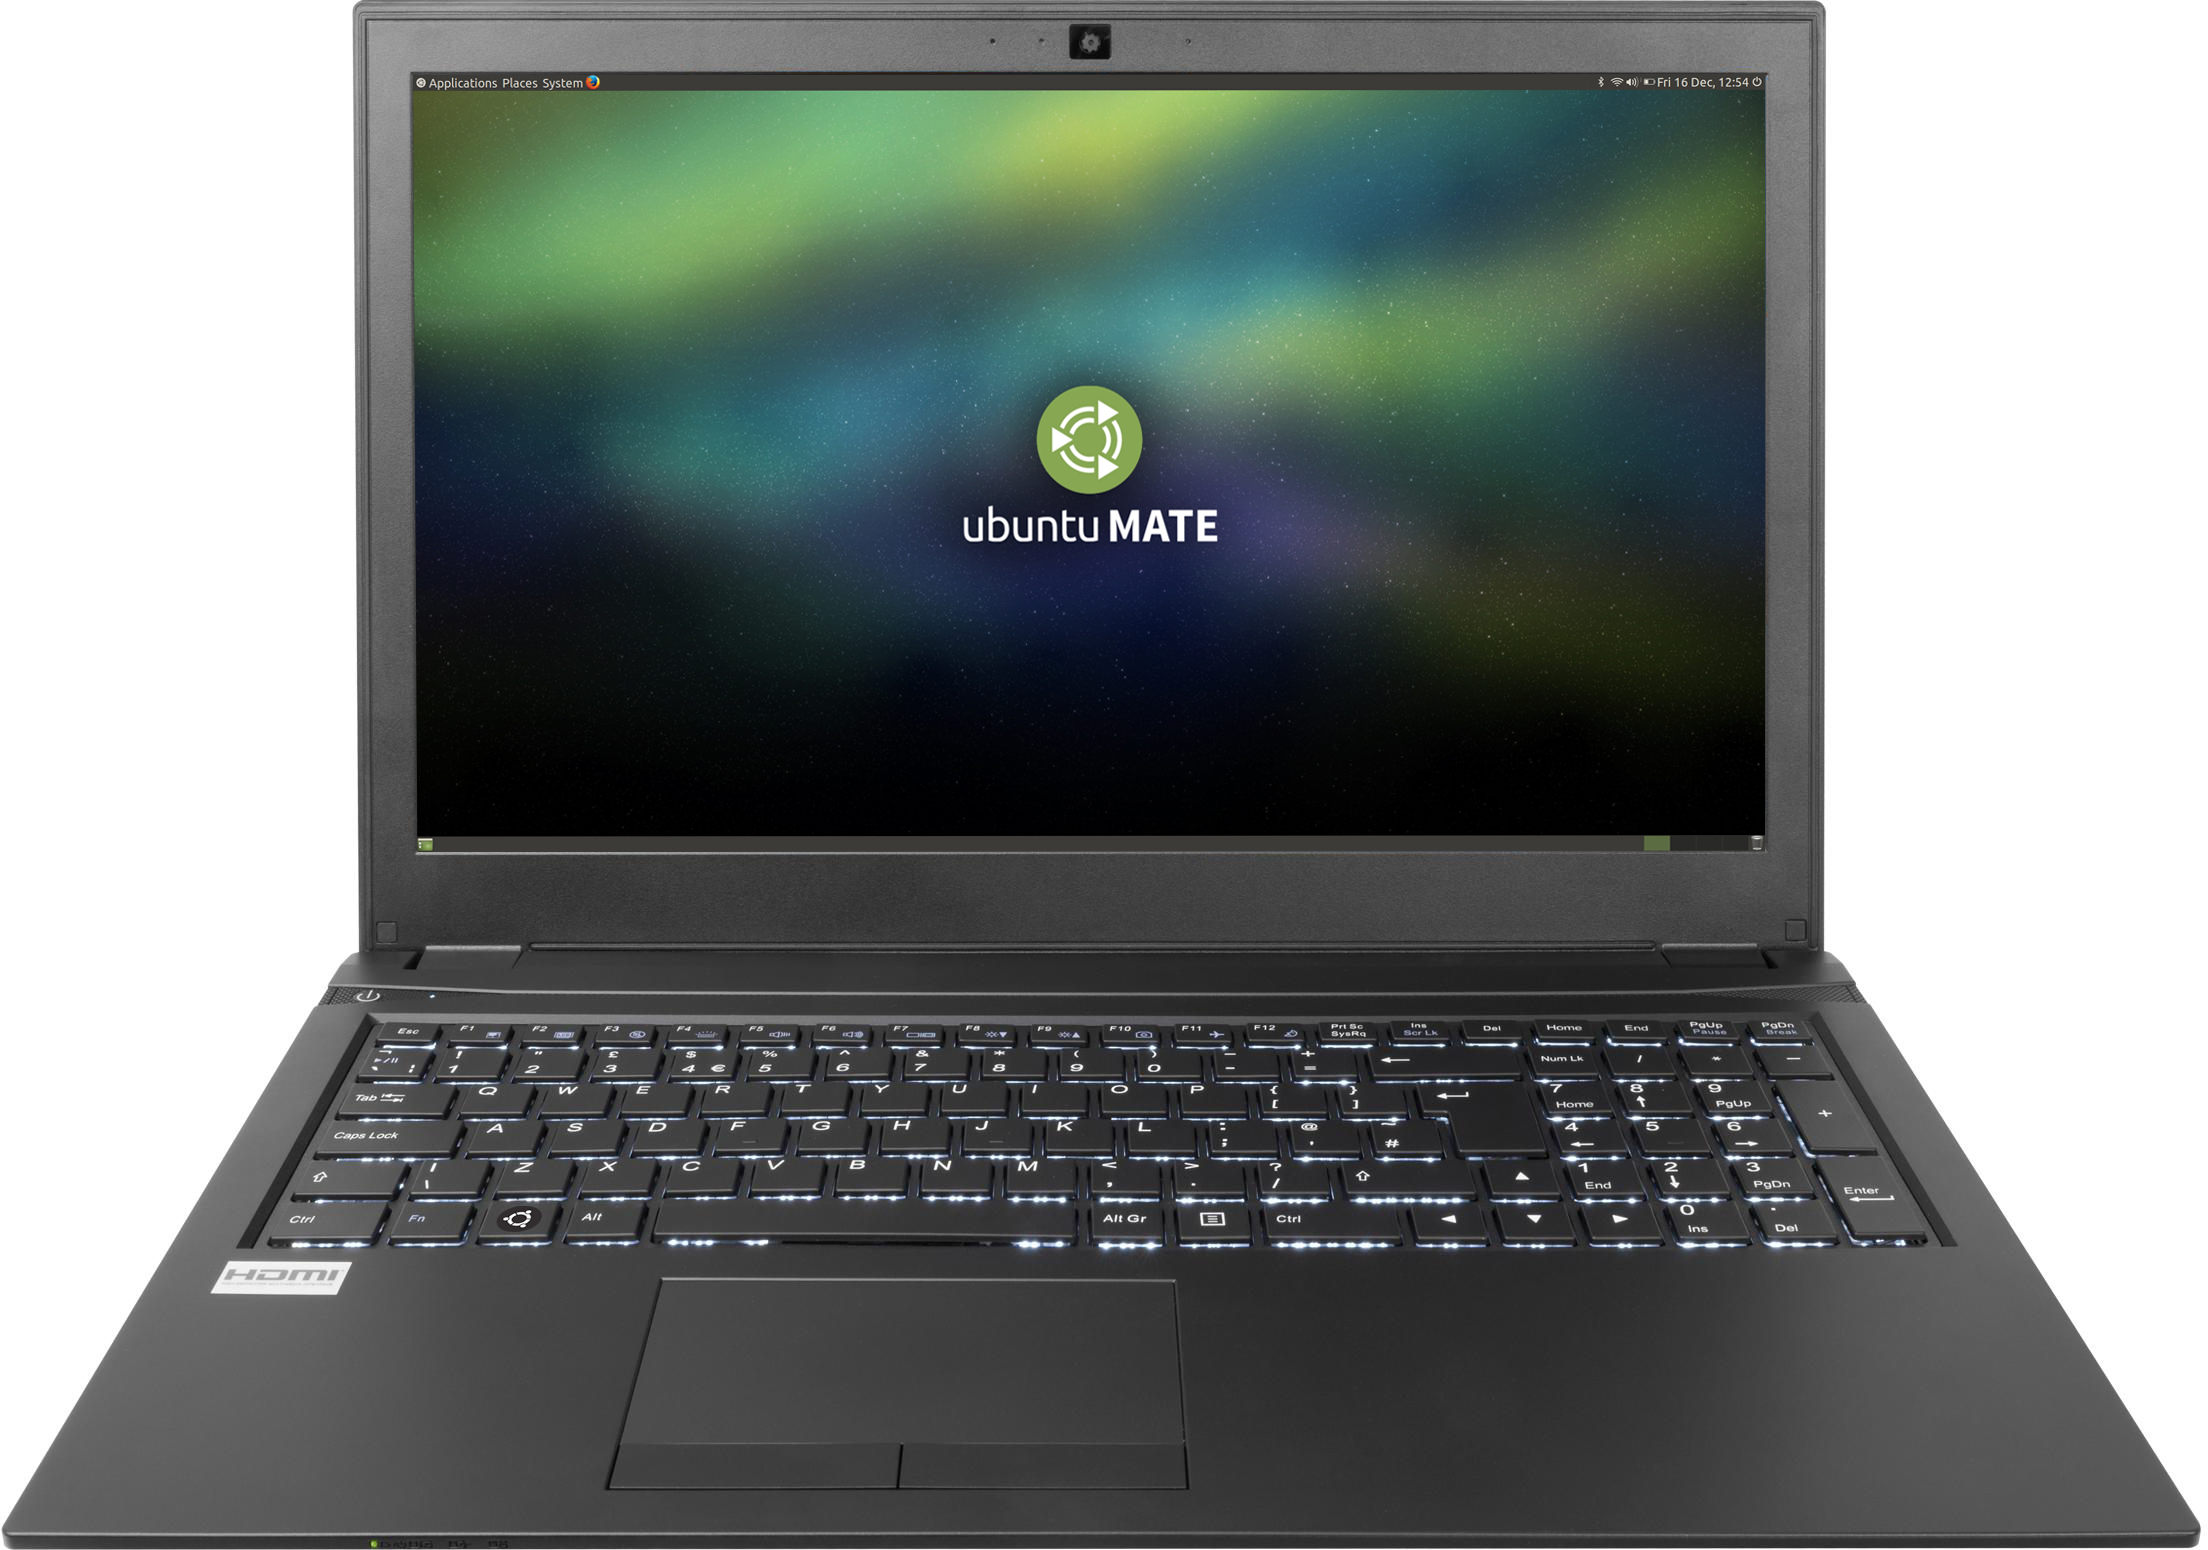 Entreoware Aether Laptop with MATE